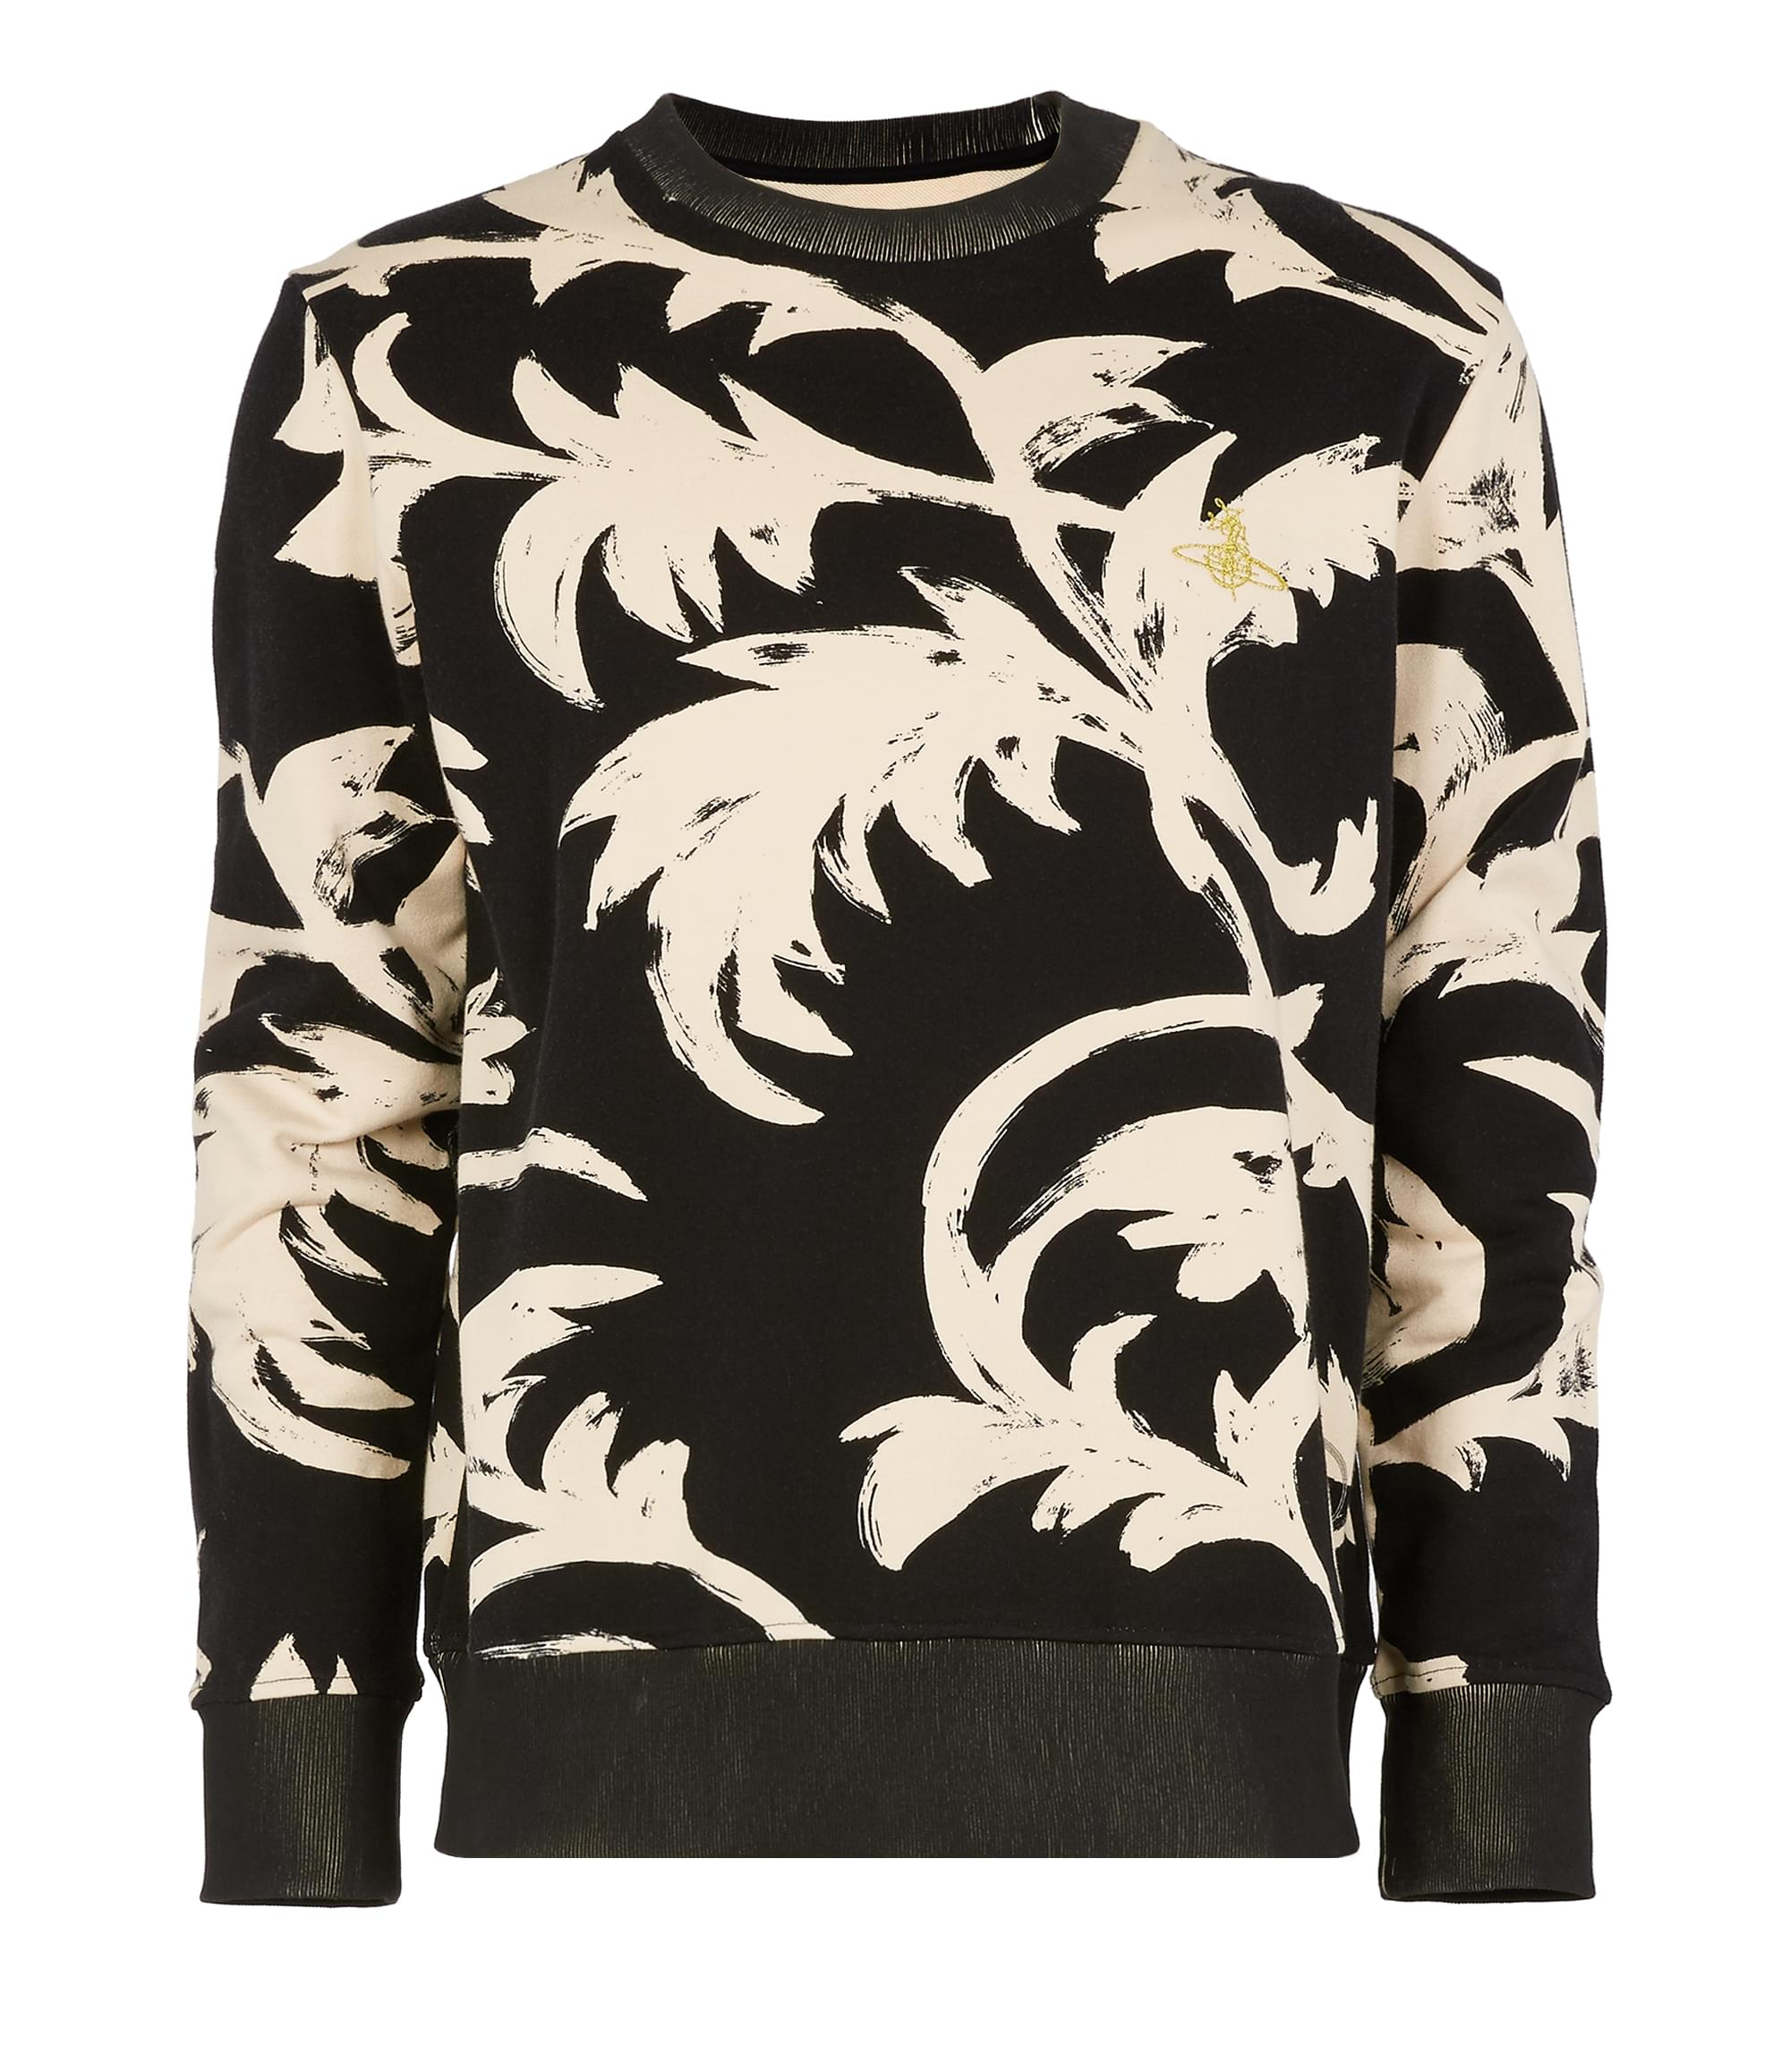 Vivienne Westwood Classic Round Neck Sweater Black Print Leaves